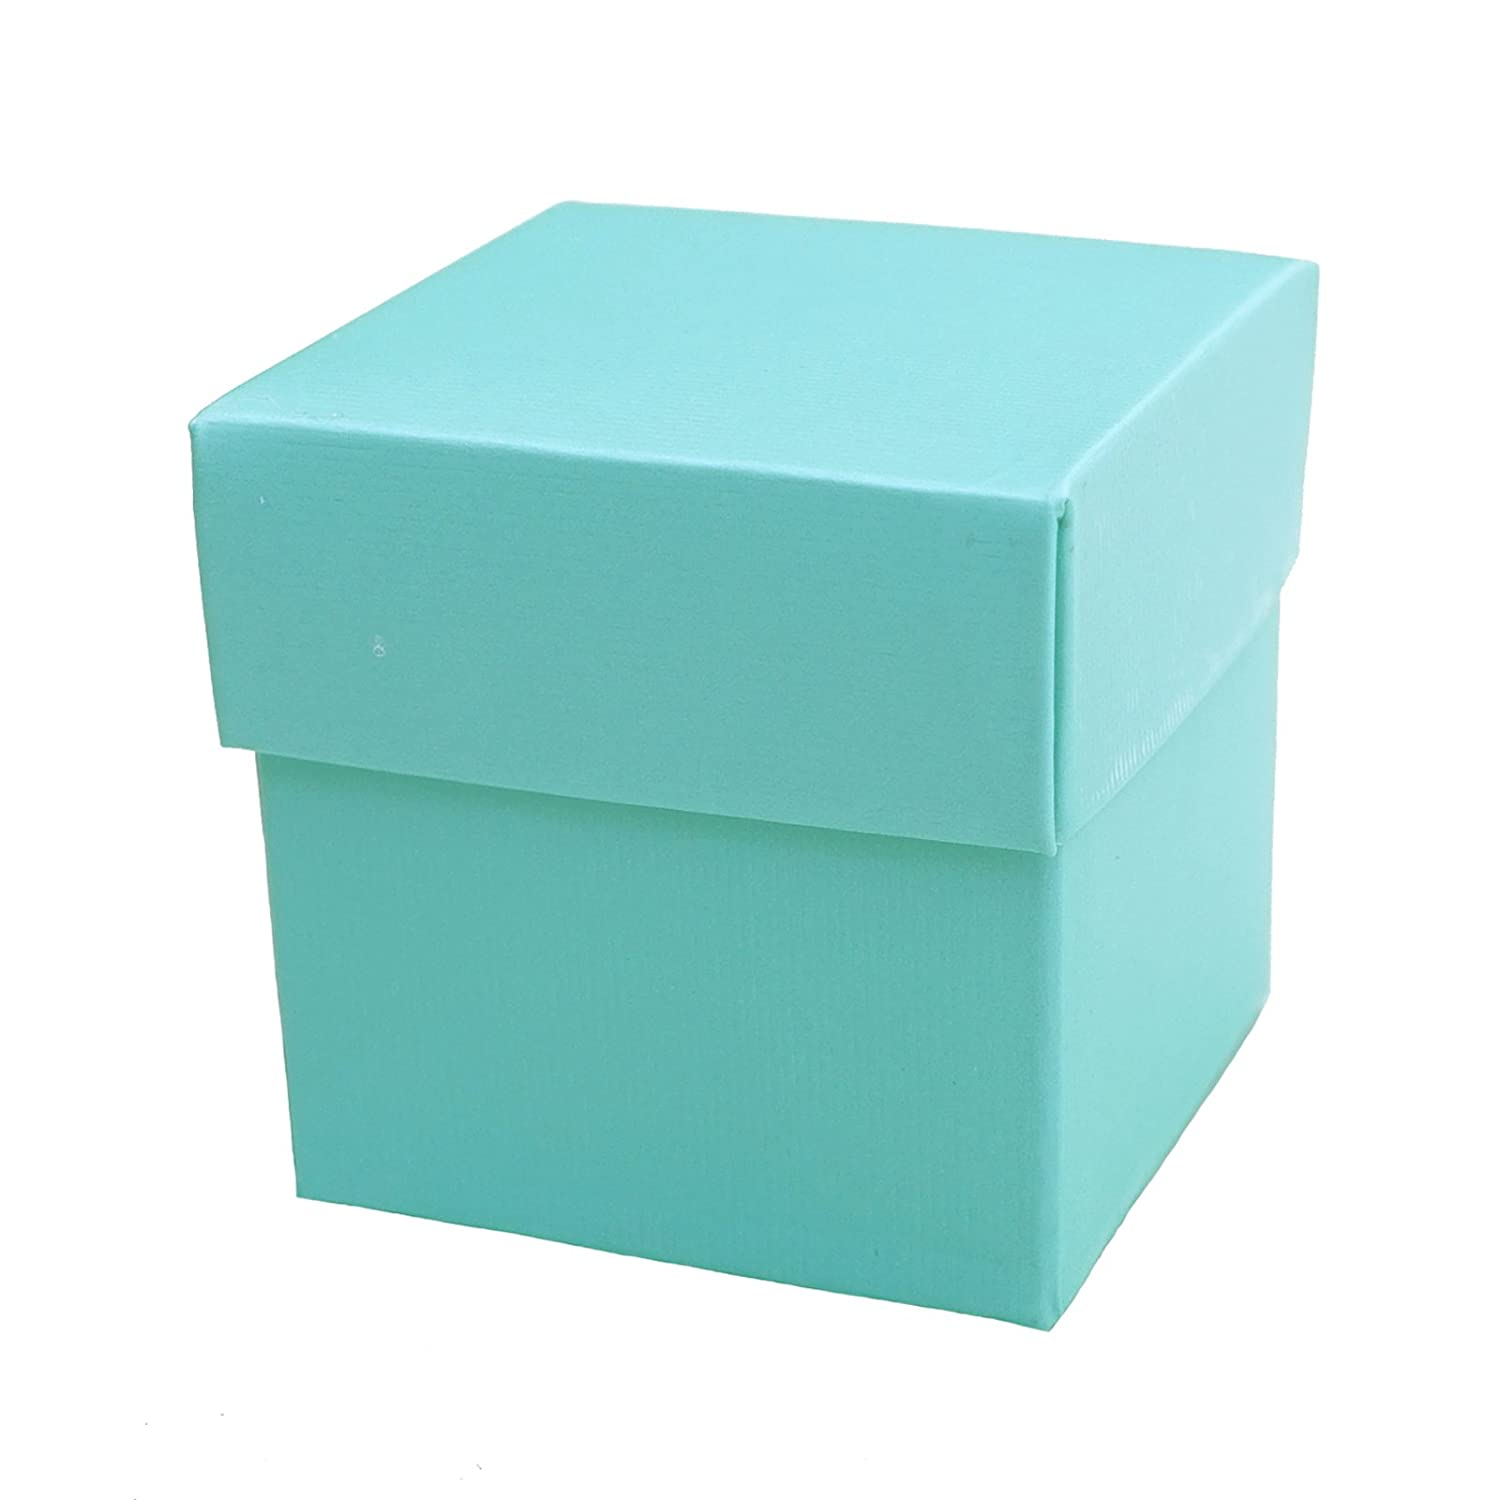 Where To Buy Square Cake Boxes